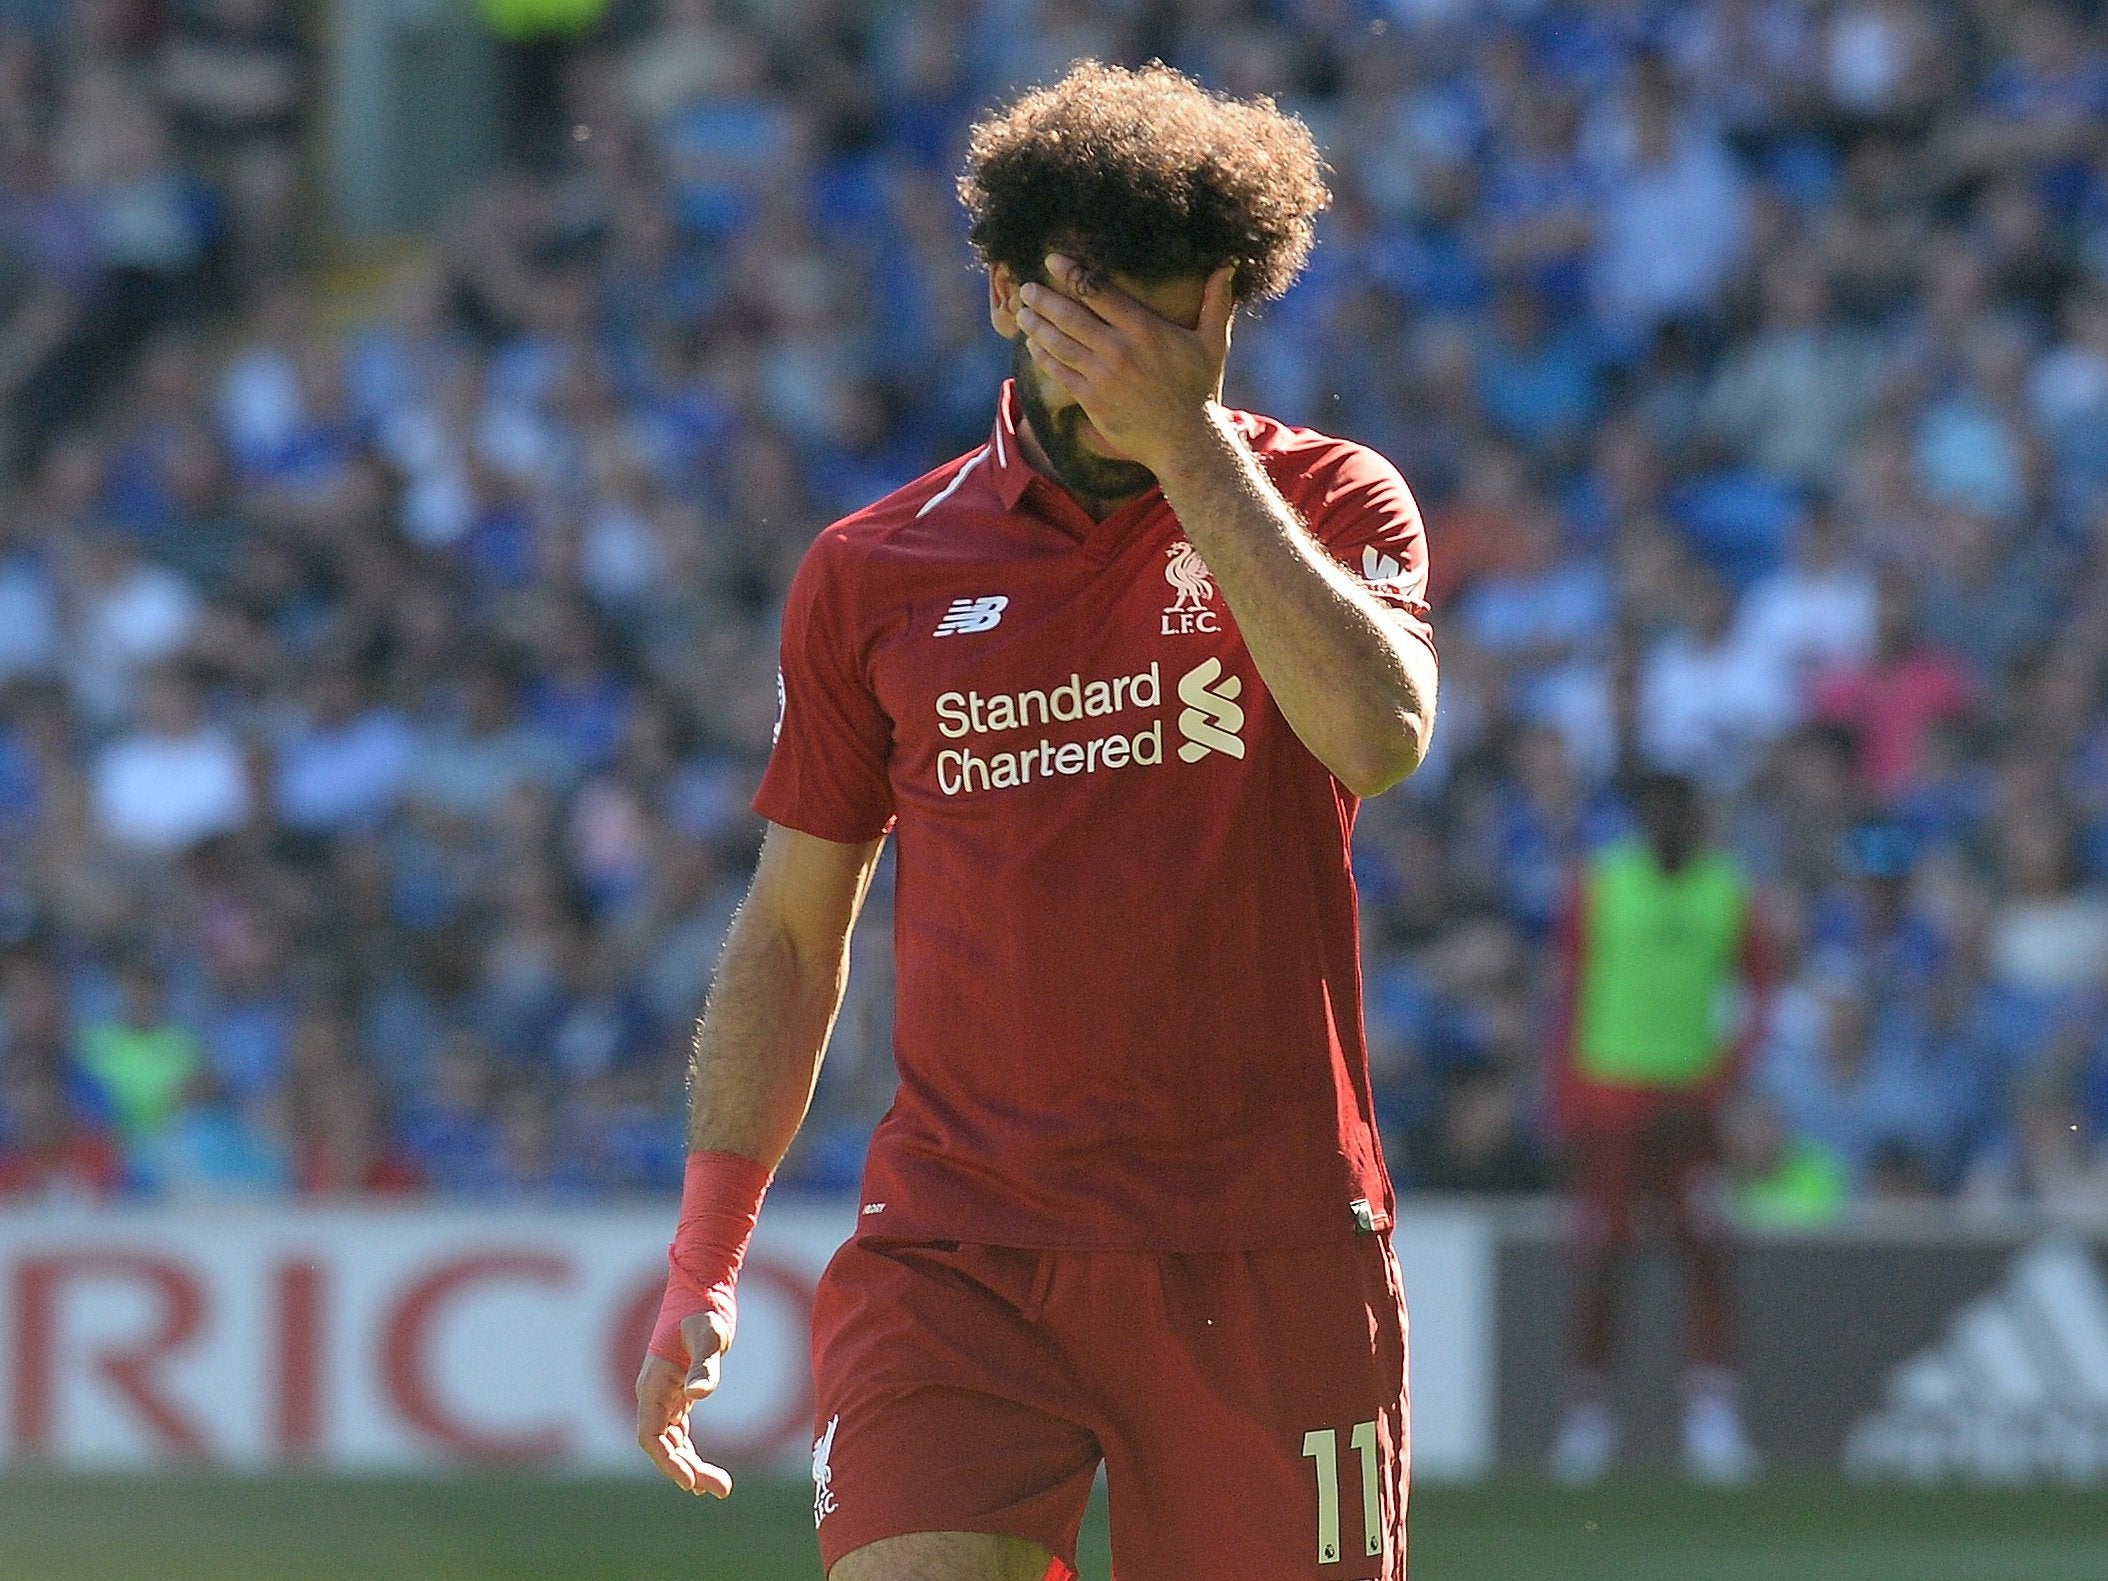 4f9e78c81a9 Liverpool transfer news: Mohamed Salah a target for Real Madrid after  second report of fallout with Jurgen Klopp | The Independent